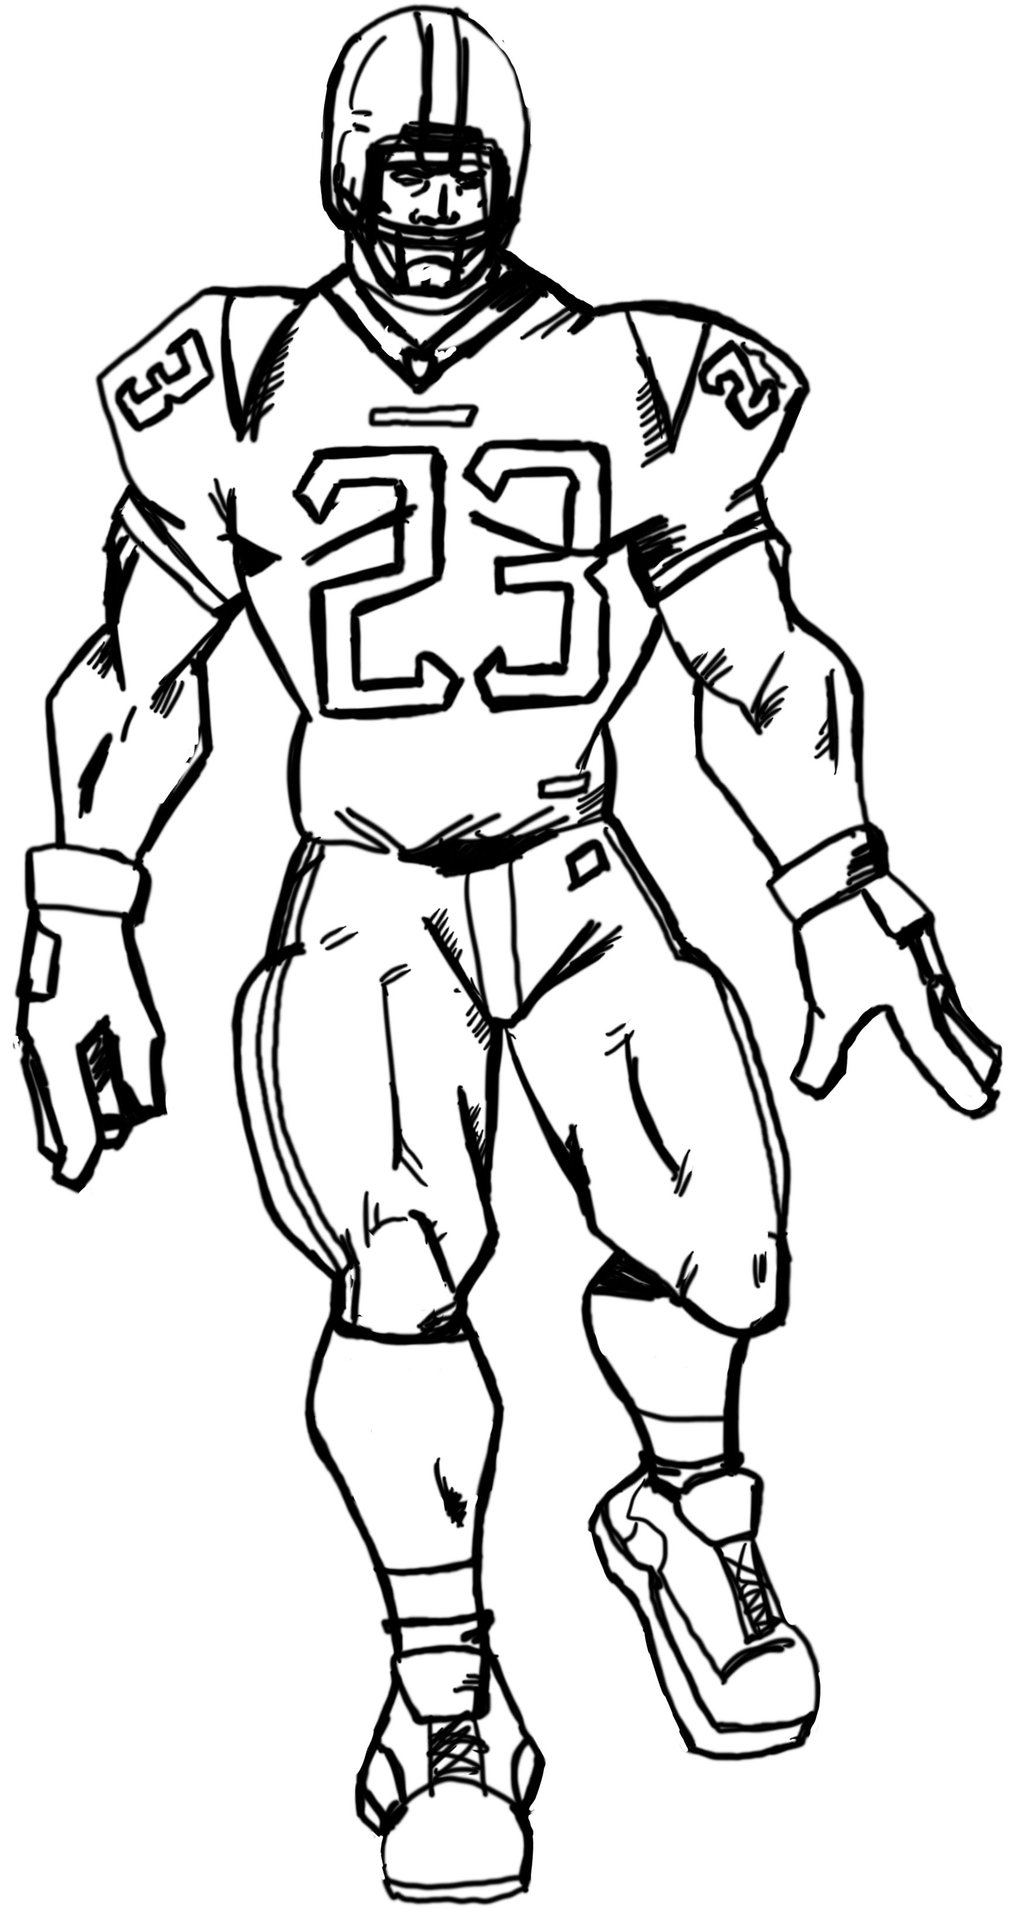 Drawing Of A Football Player